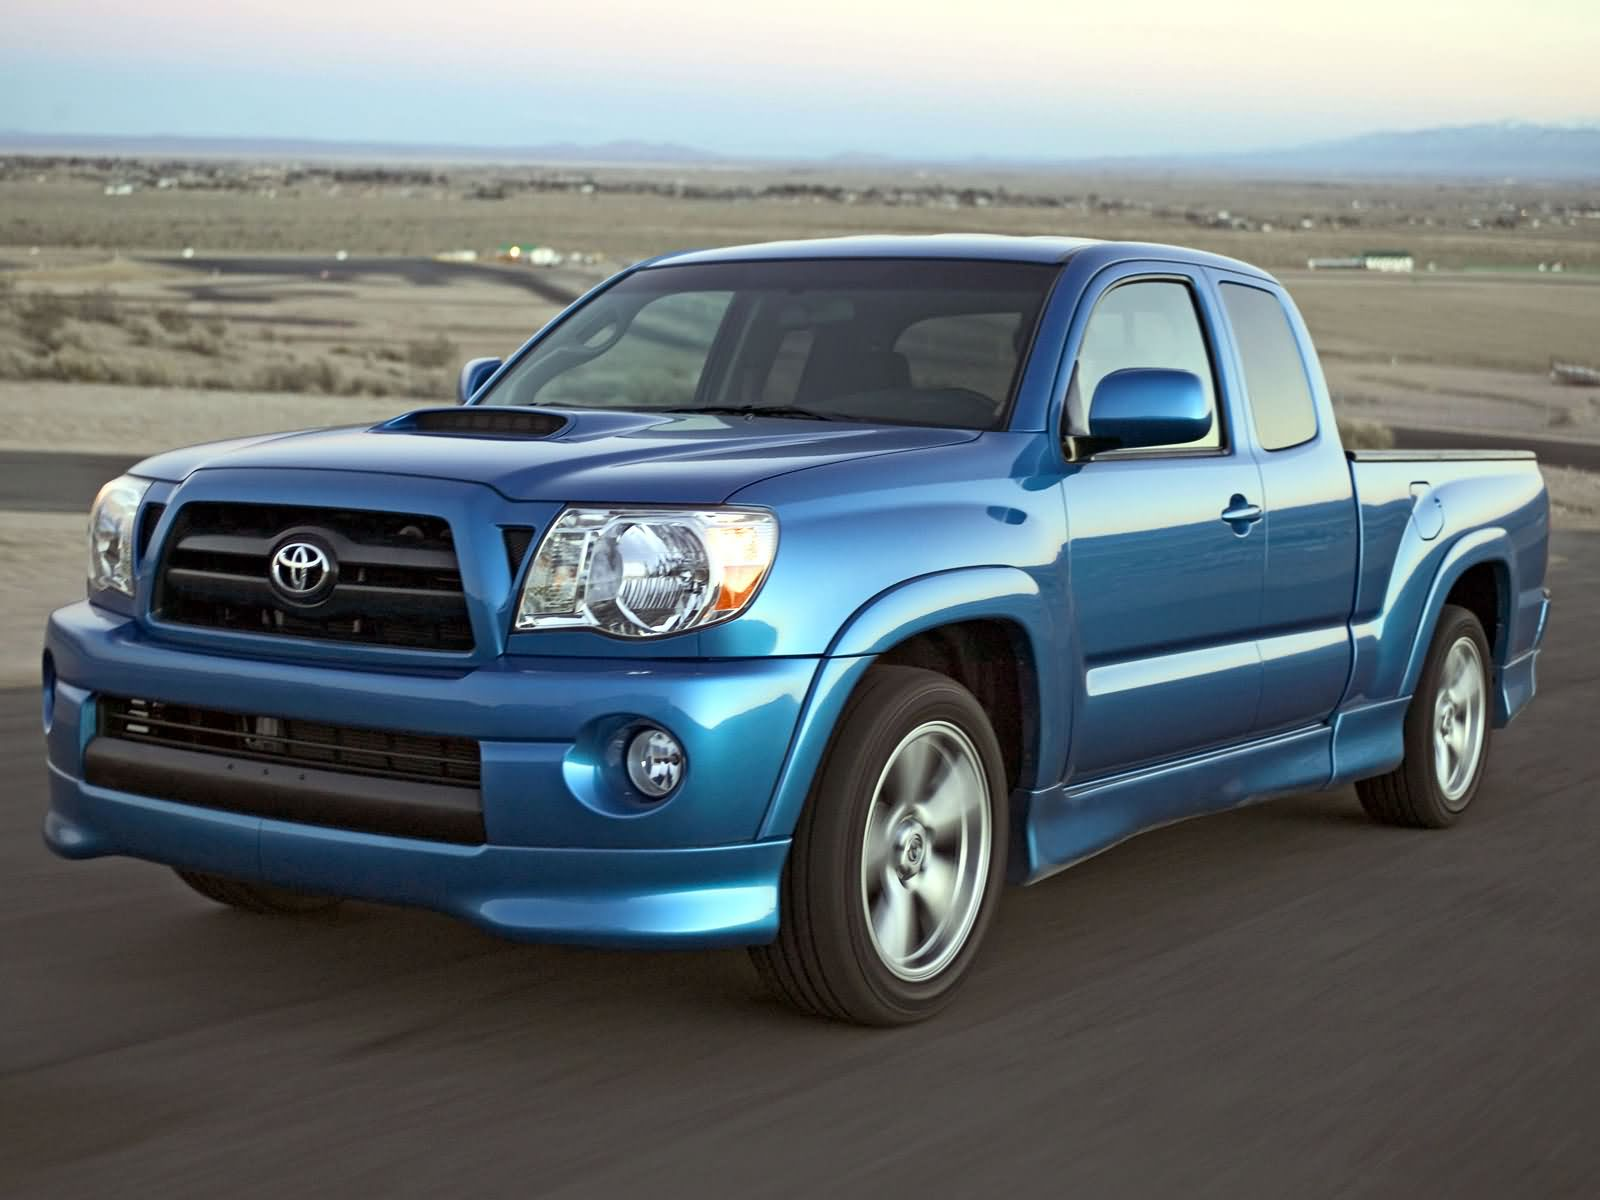 toyota tacoma x runner 2005 toyota tacoma x runner 2005 photo 12 car in pictures car photo. Black Bedroom Furniture Sets. Home Design Ideas